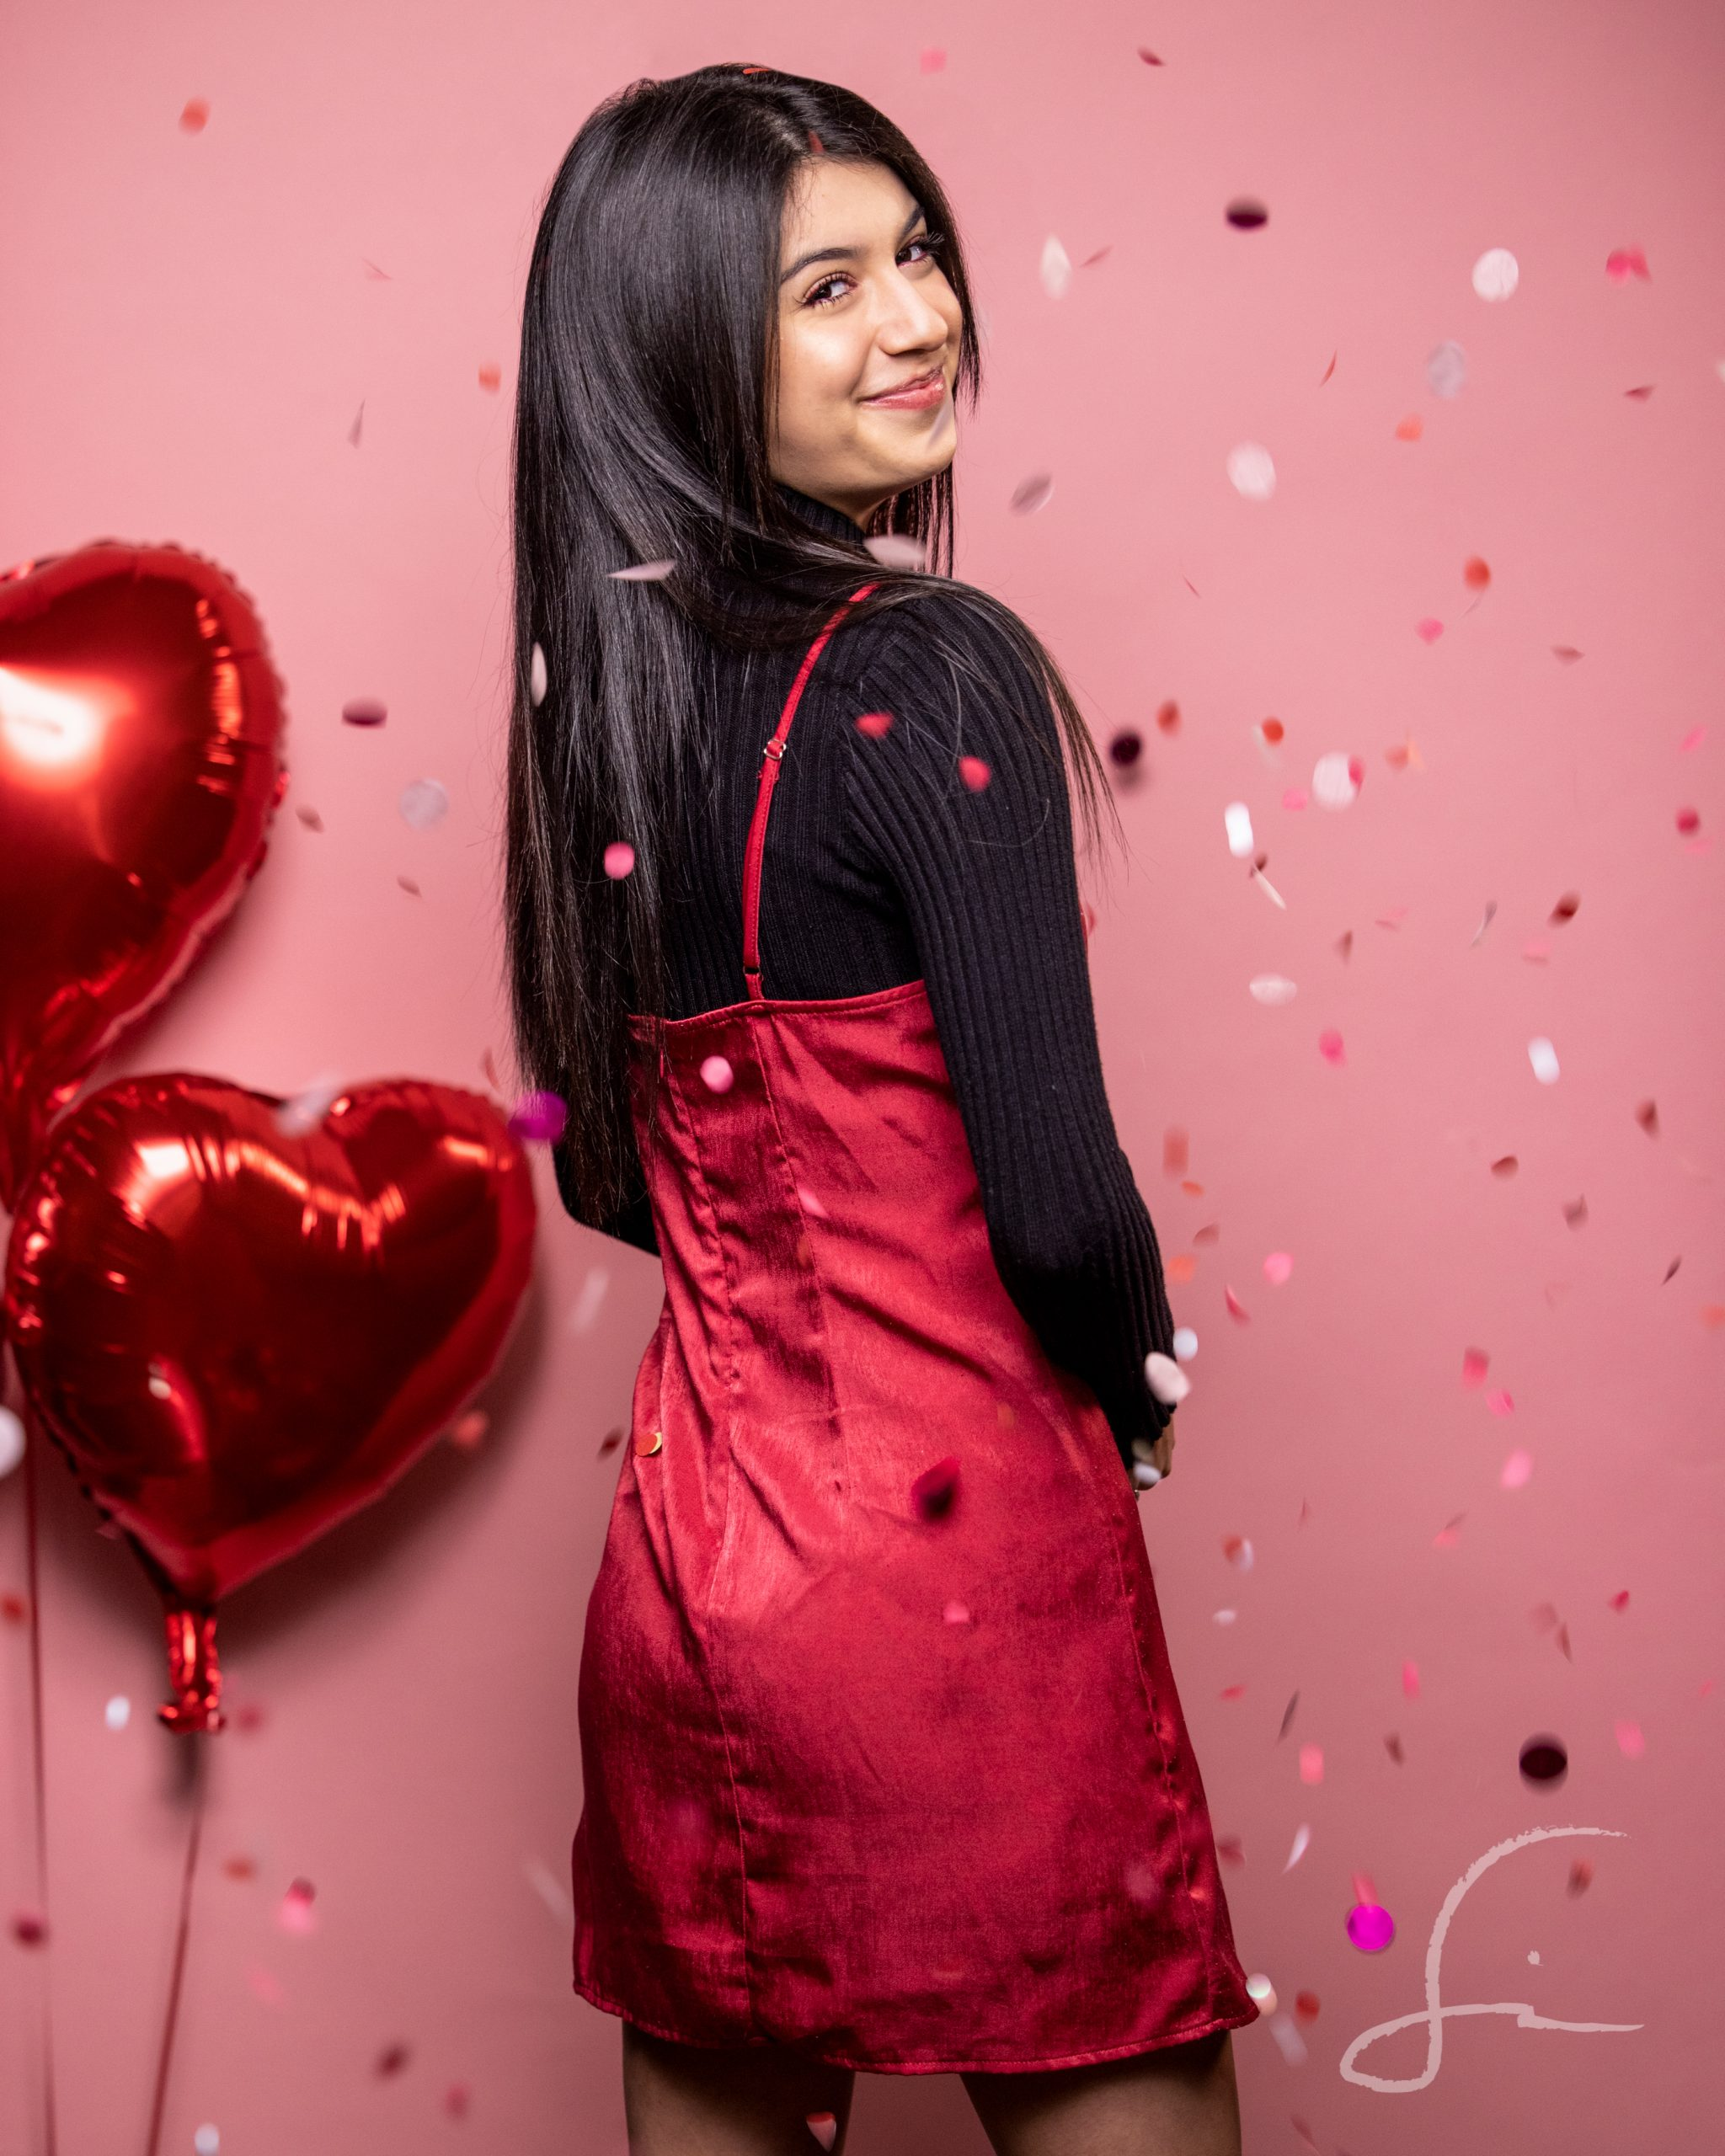 teen girl against a pink background with paper confetti and heart shaped balloons